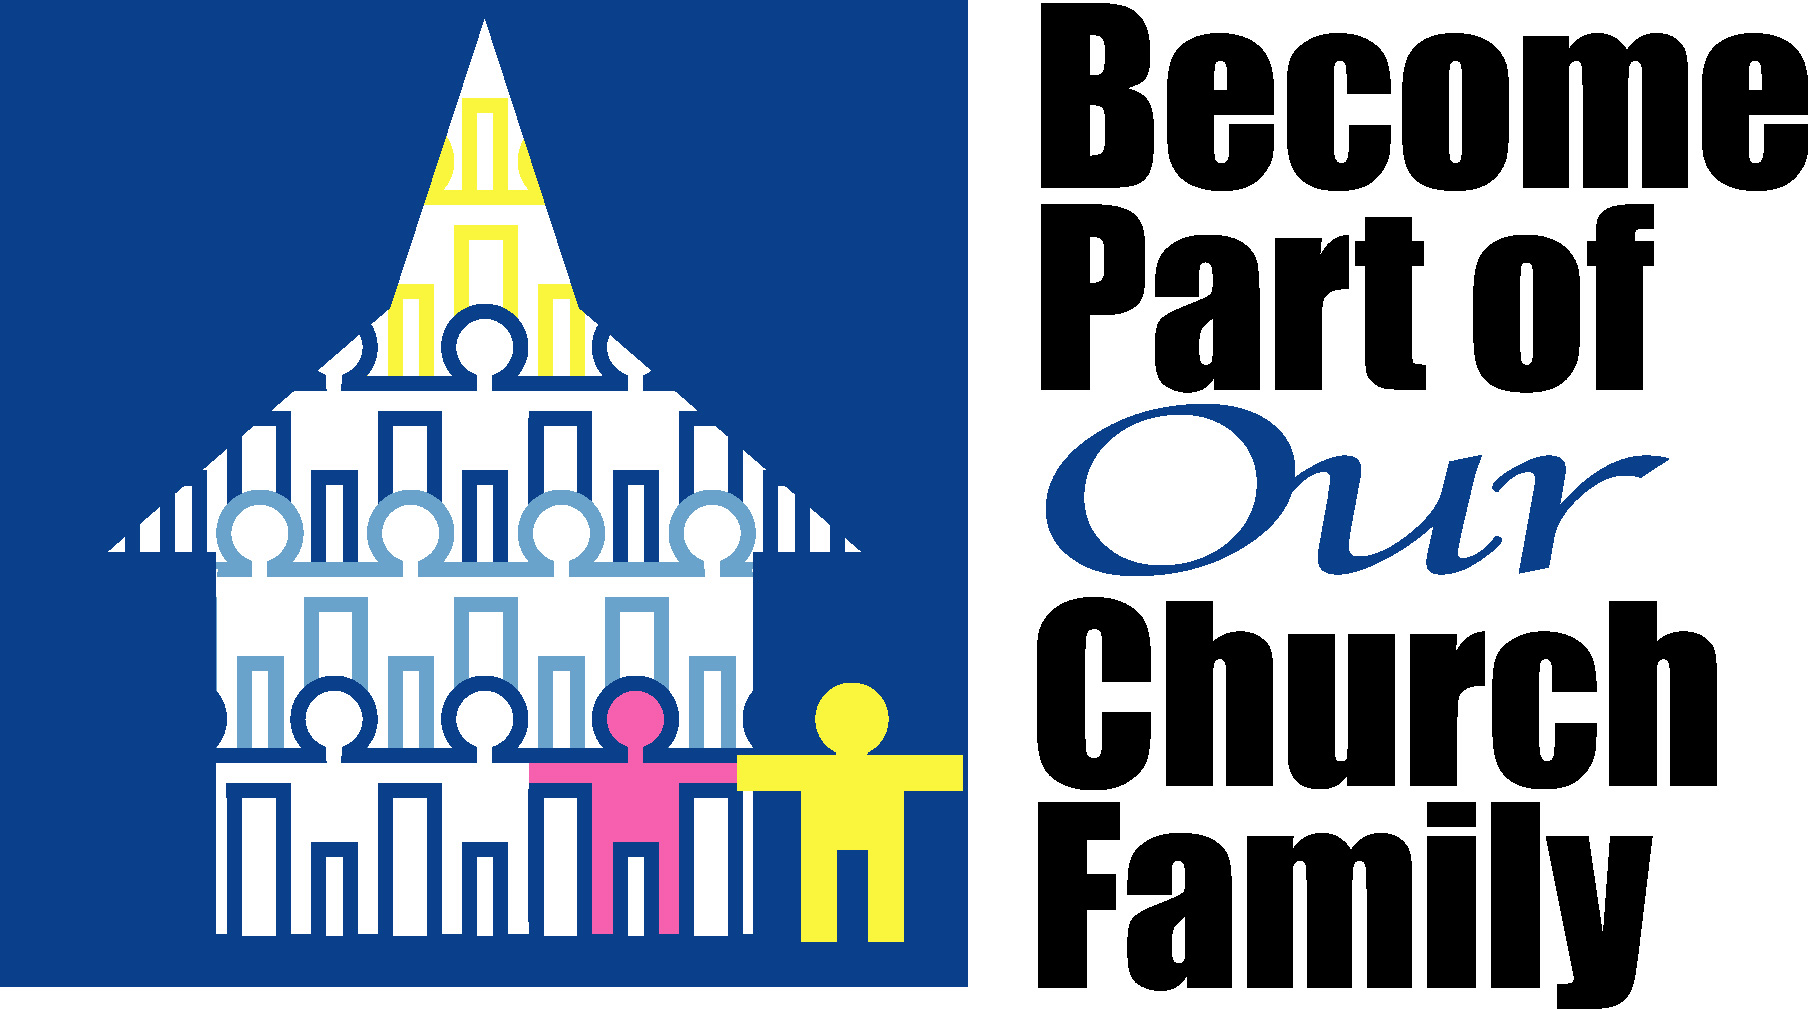 Exceptional Church Choir Mission Statement #1: New-members-become-part-of-our-church-family-welcome-recent-new-9RZnQ3-clipart.jpg